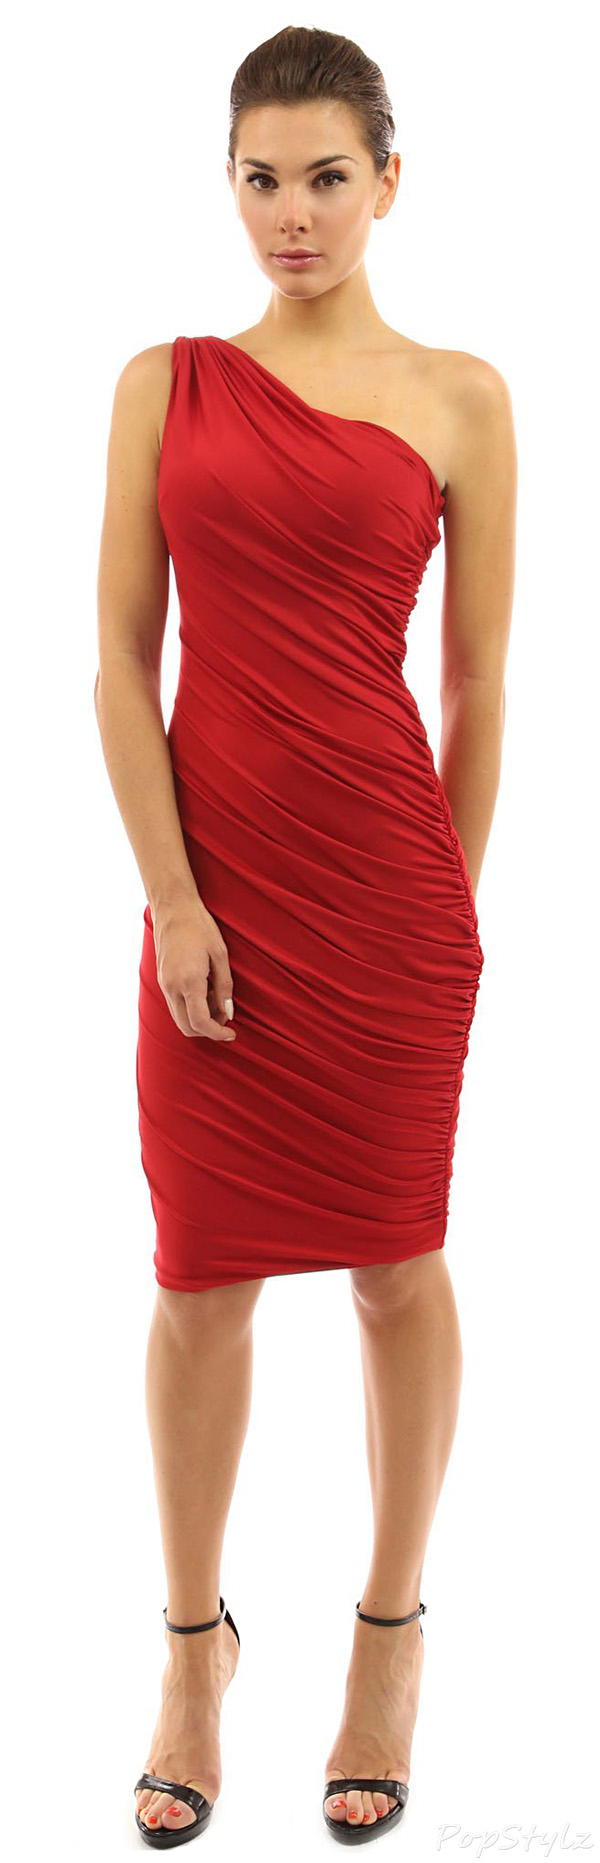 PattyBoutik Women\'s One Shoulder Cocktail Dress | Haircuts ...